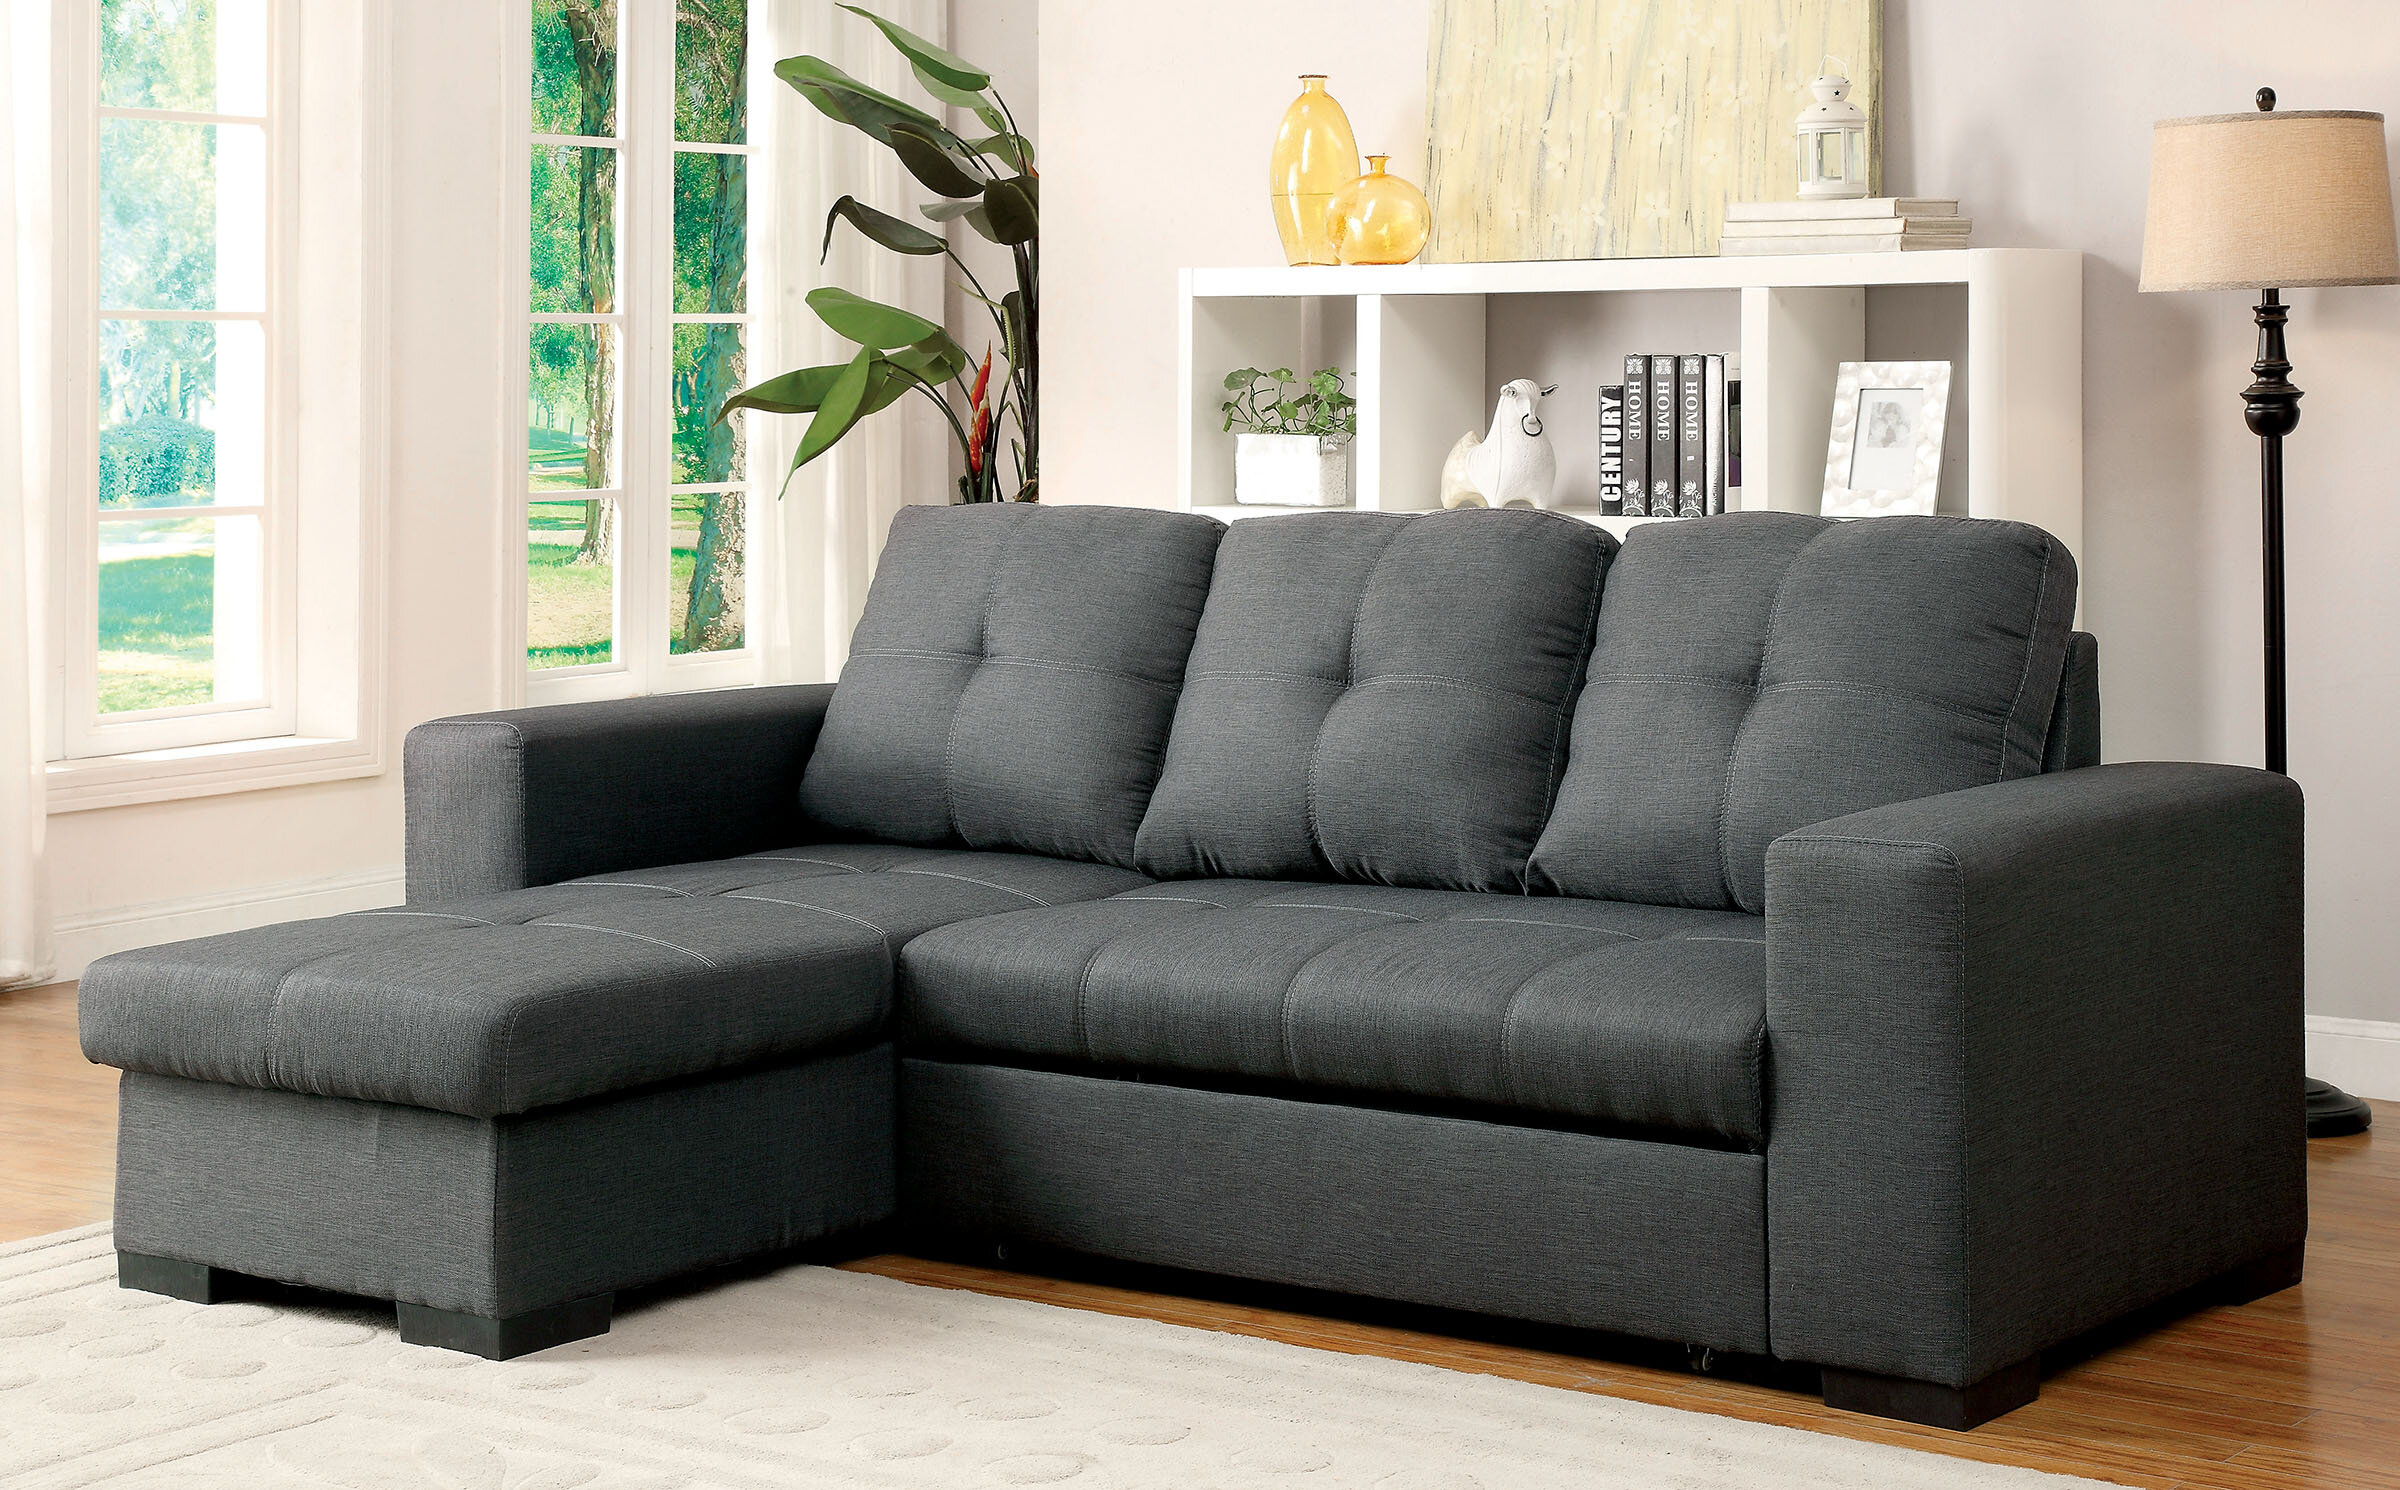 Admirable Alexandrea Right Hand Facing Sleeper Sectional Gmtry Best Dining Table And Chair Ideas Images Gmtryco